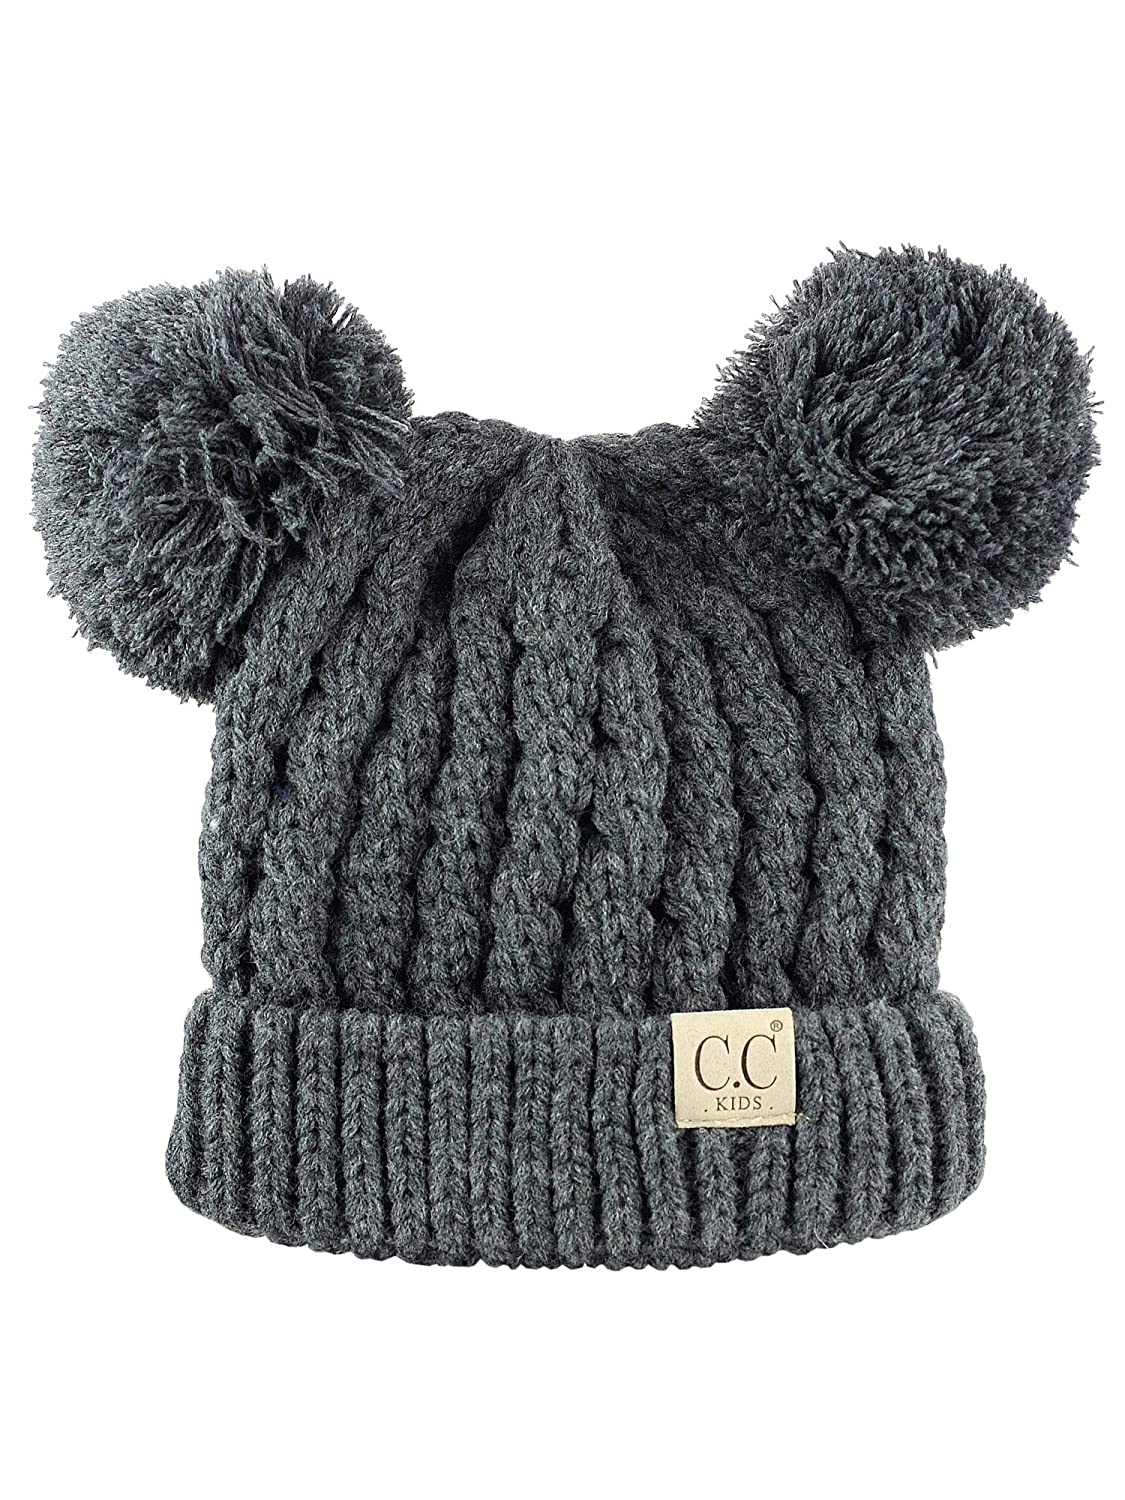 9a23e27a1ee61 C.C Kids  Children s Cable Knit Double Ear Pom Cuffed Beanie Cap Hat KIDS  24-